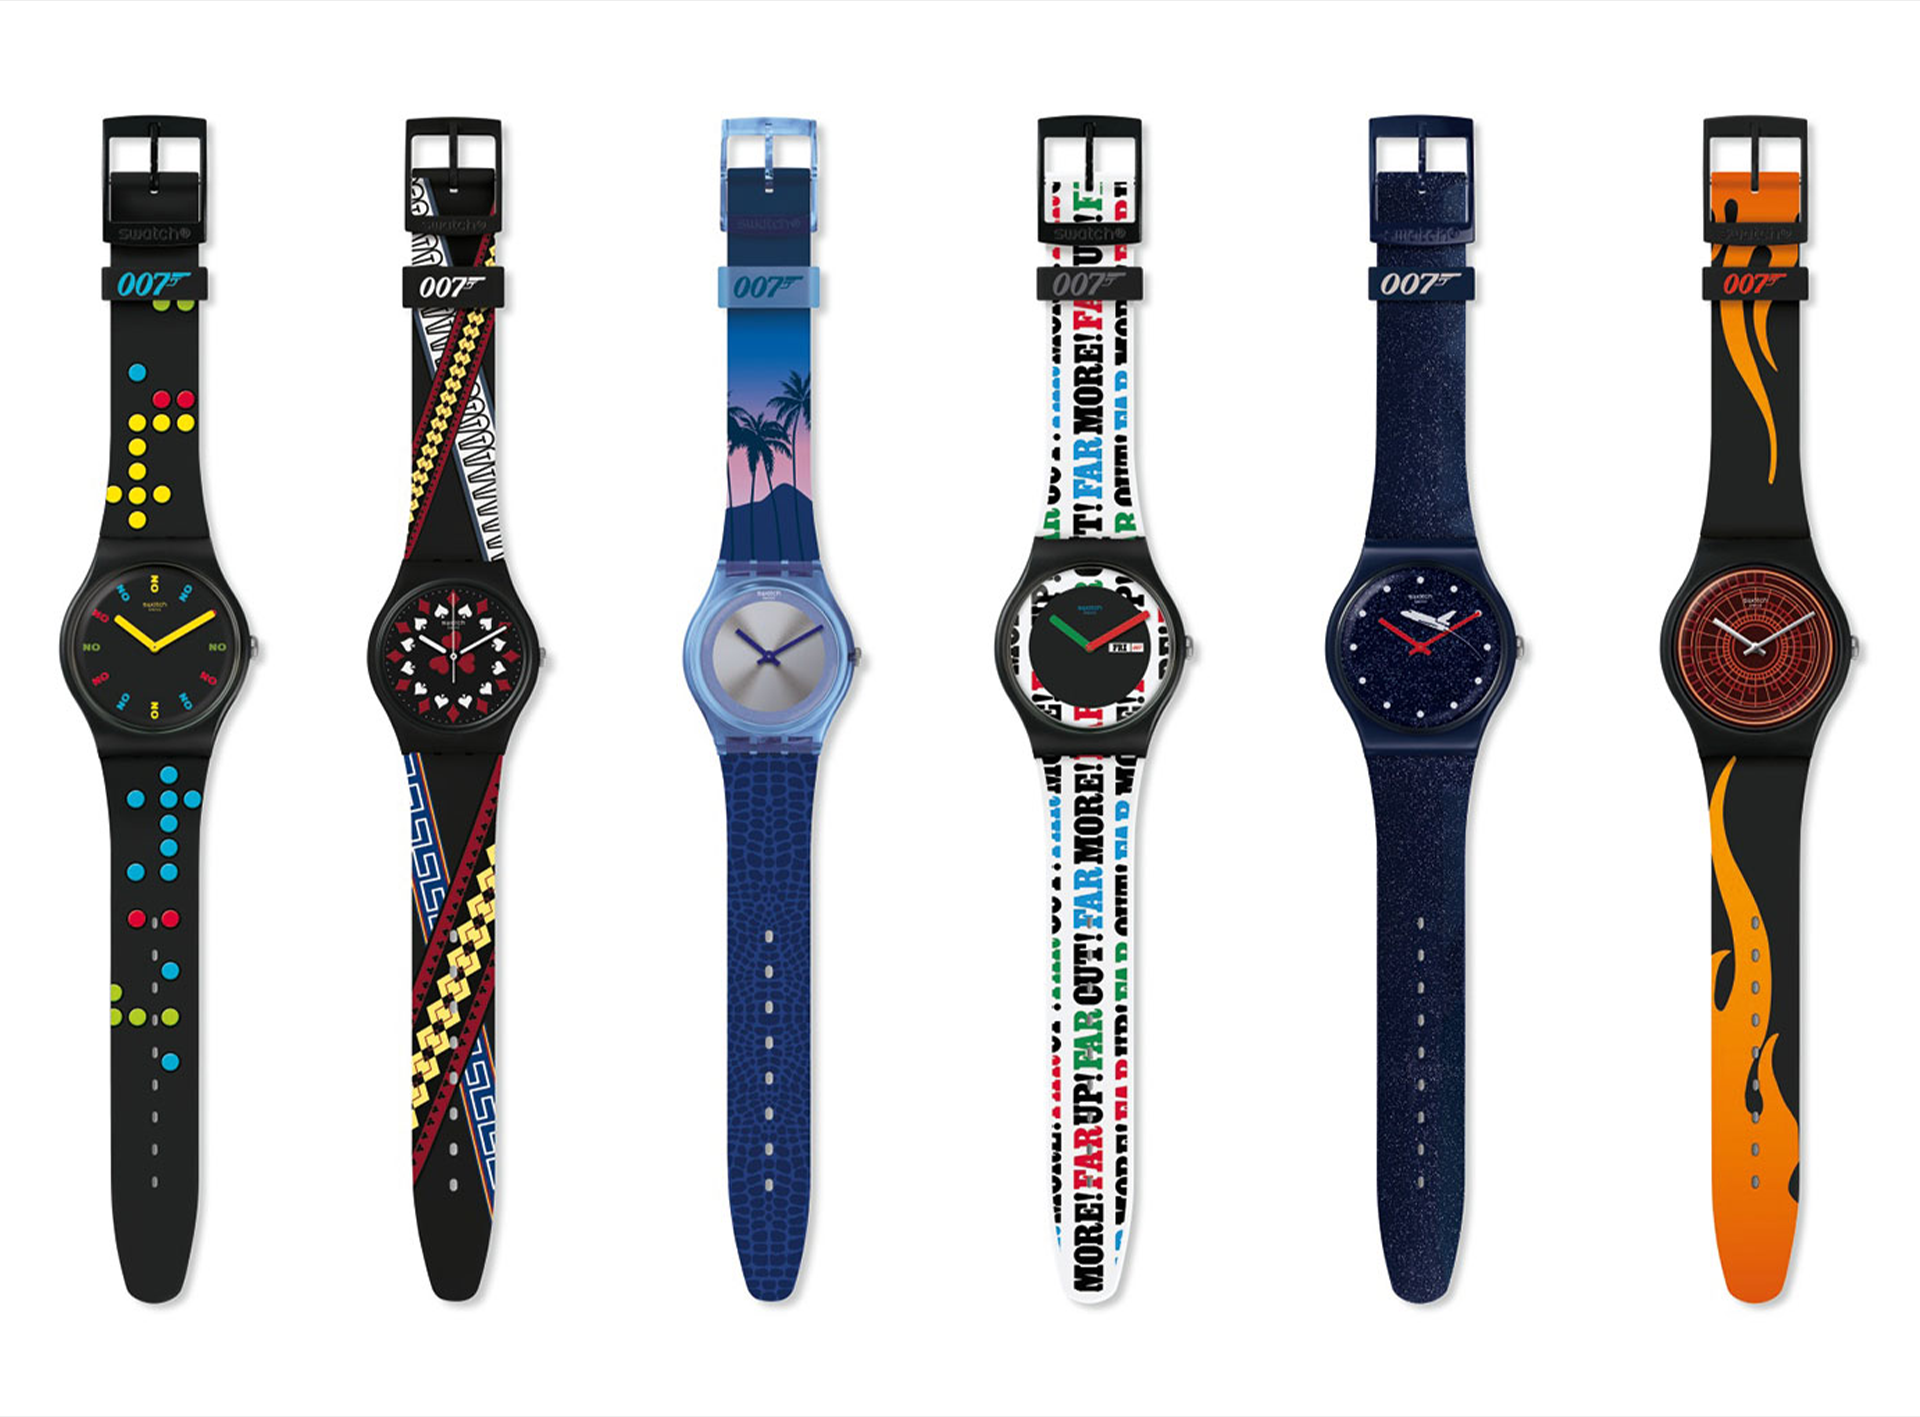 Swatch X 007 Collection Released